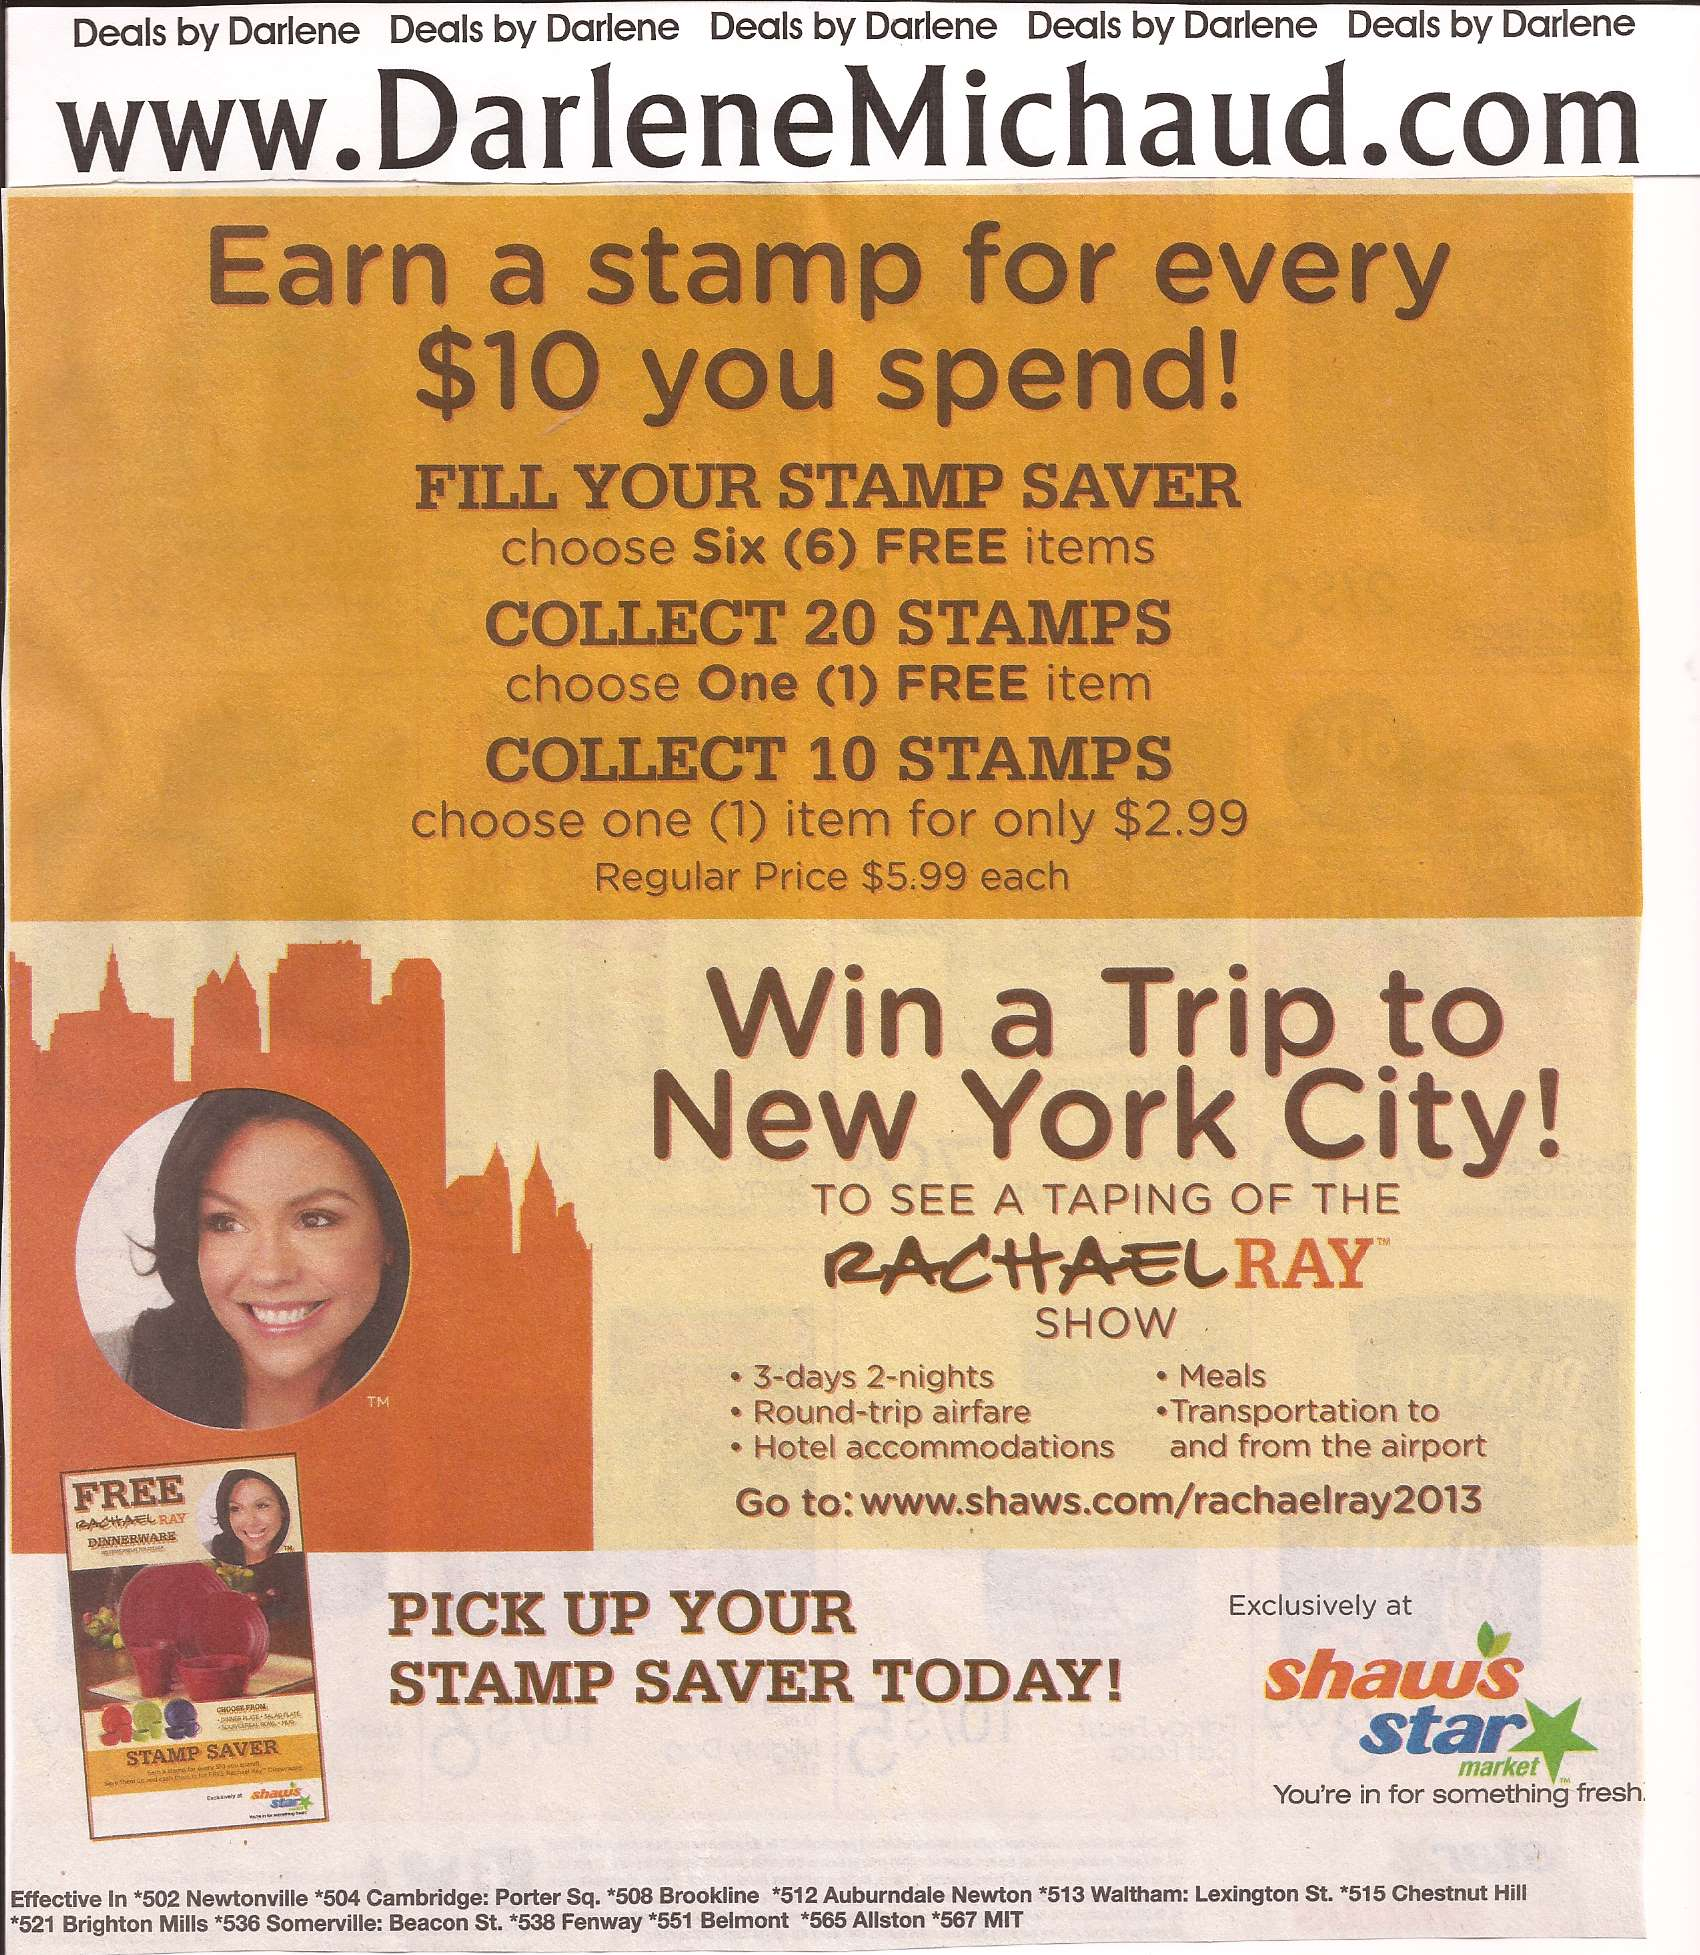 shaws-flyer-preview-96-912-7b